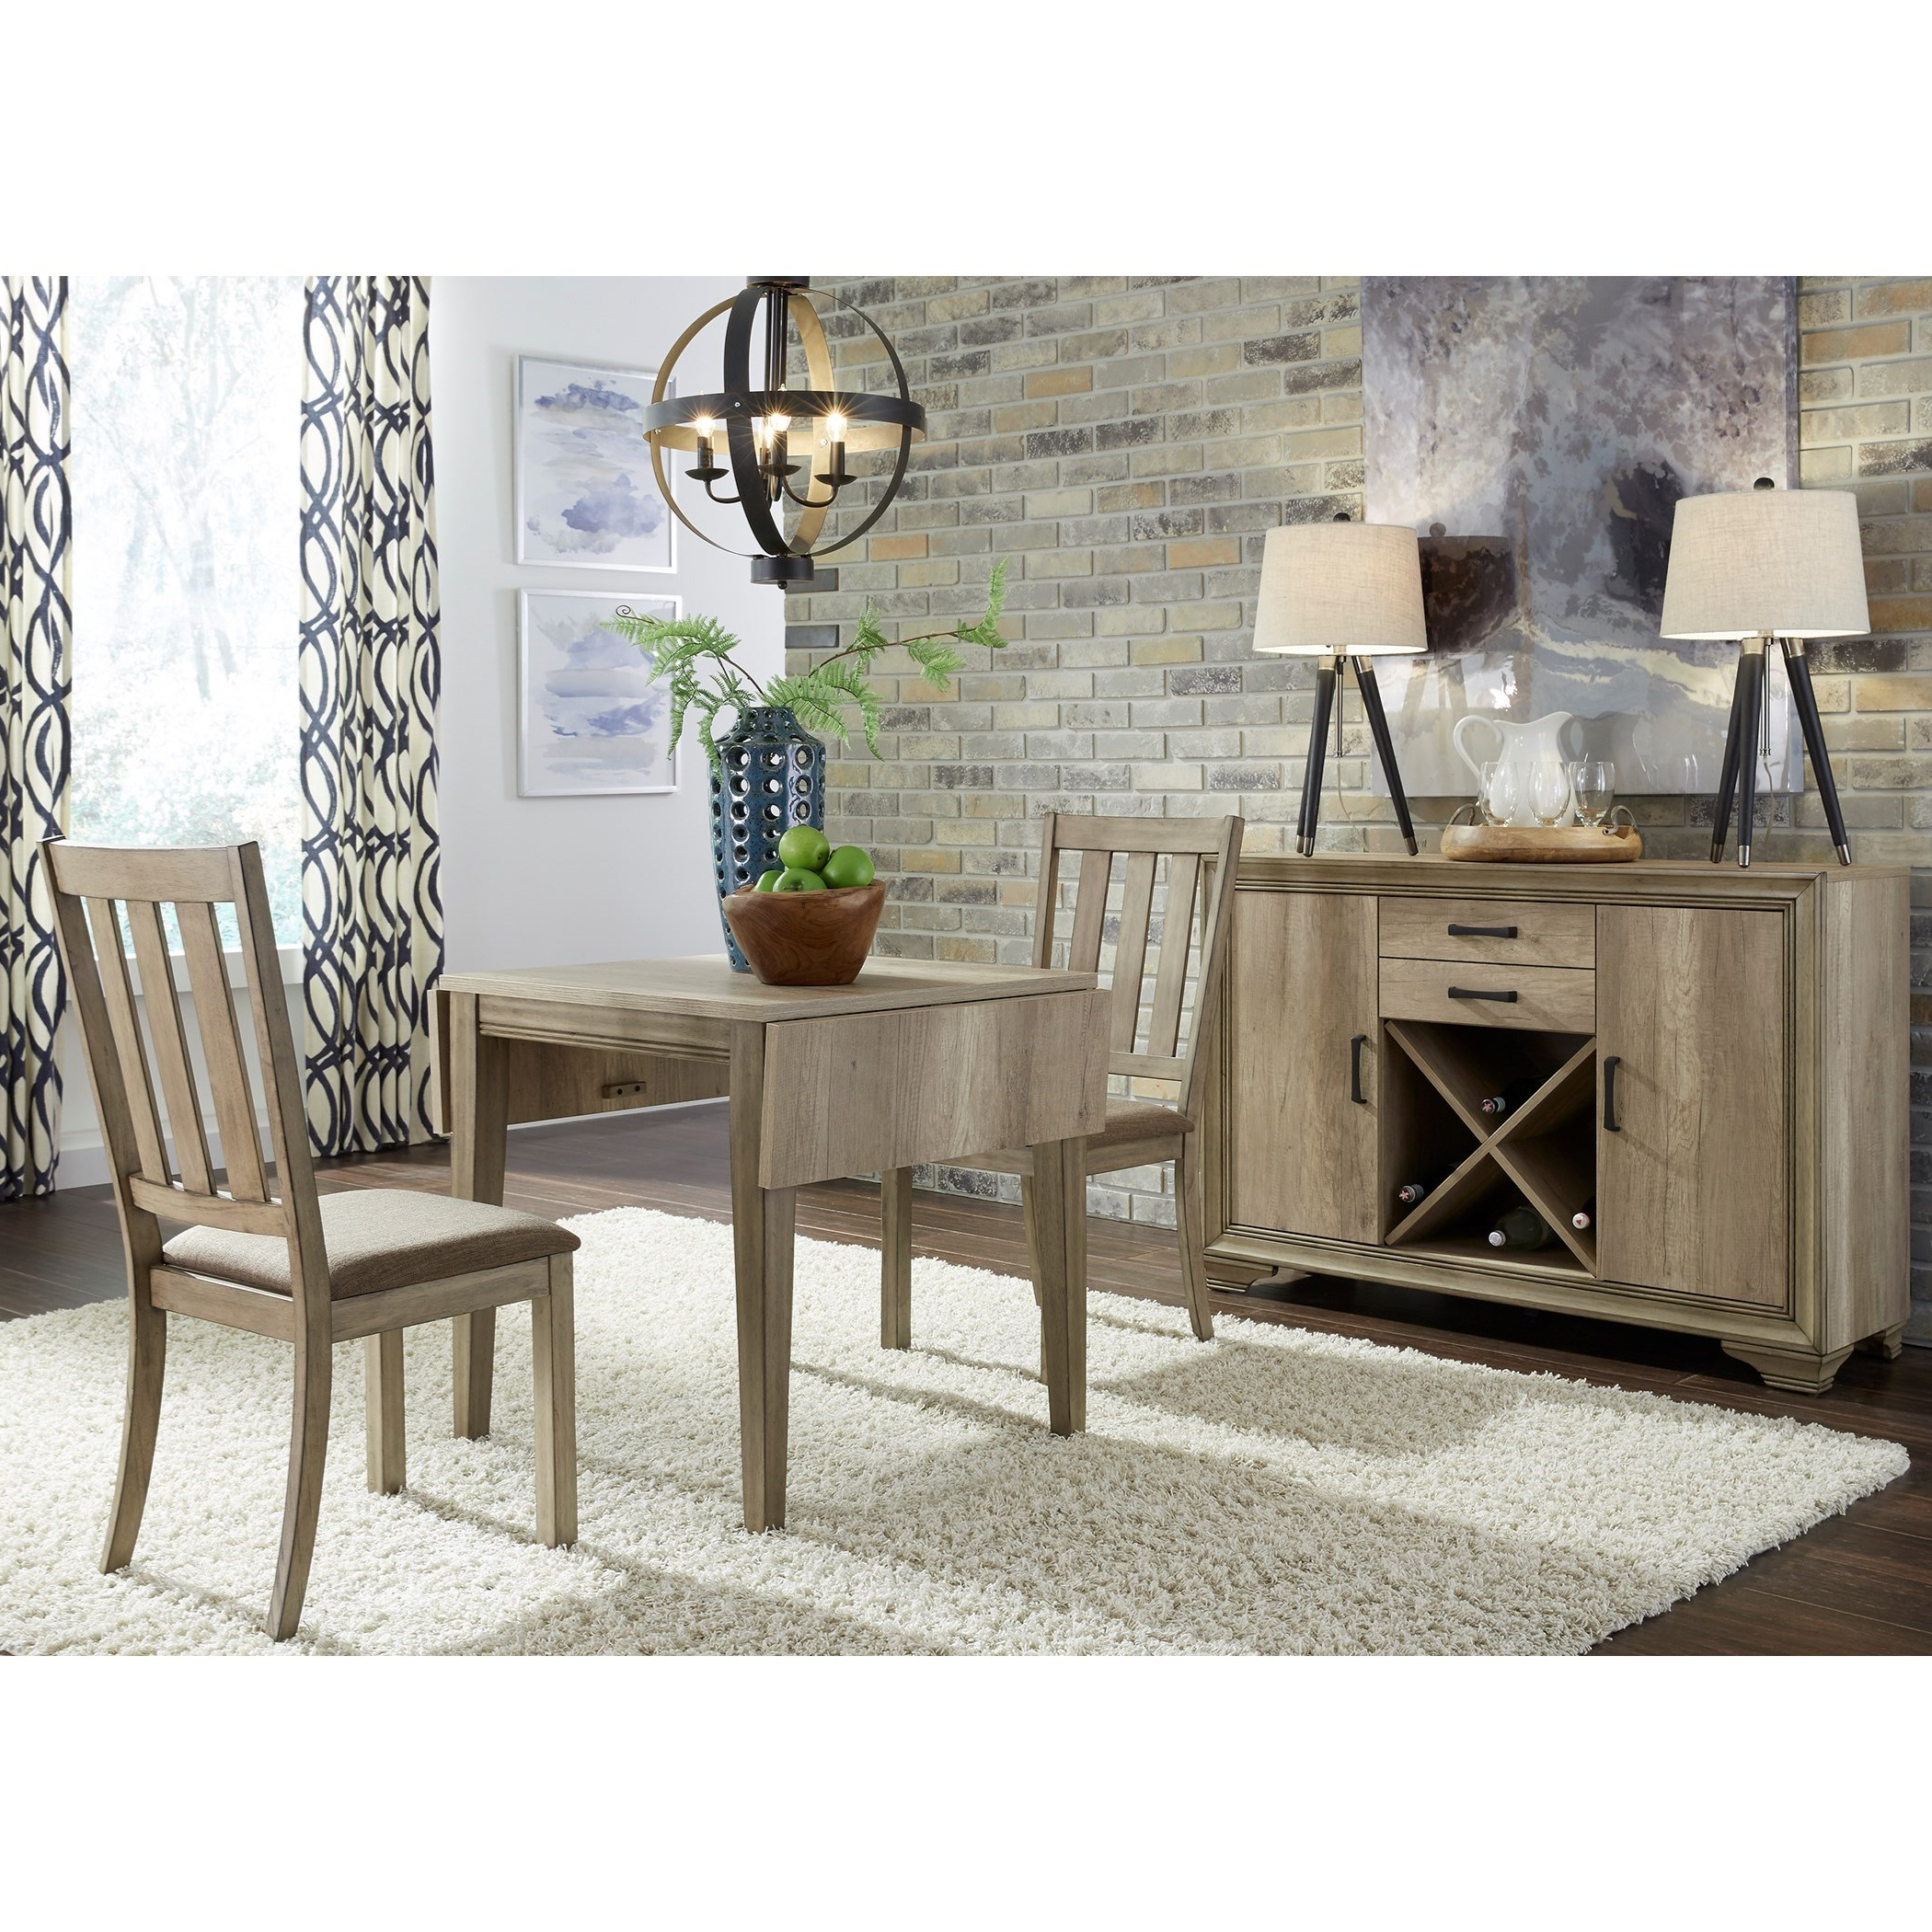 Liberty Furniture Sun Valley 439 Dr 3Dls 3 Piece Drop Leaf Pertaining To Latest Transitional 4 Seating Double Drop Leaf Casual Dining Tables (View 16 of 25)